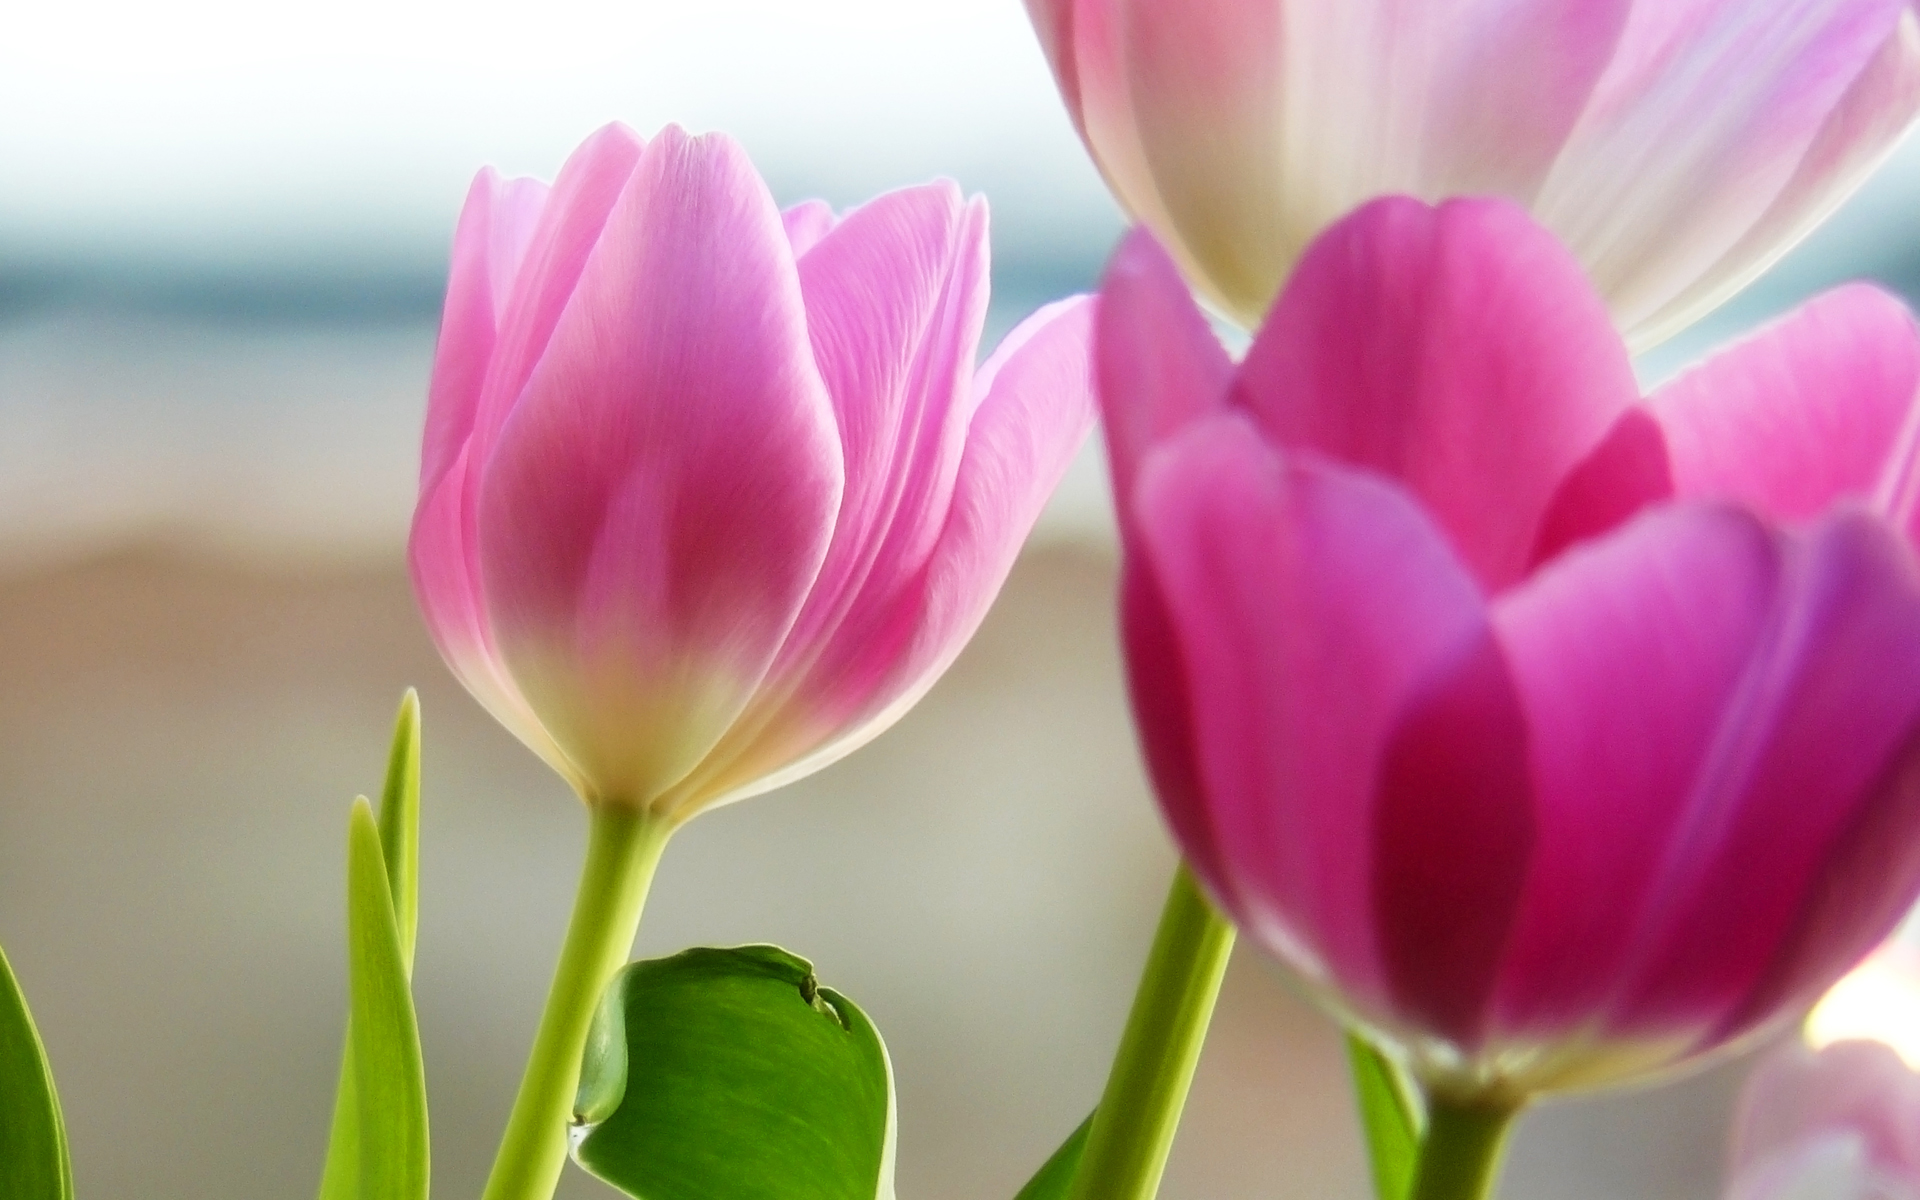 wallpapers flowers wallpaper spring tulips 1920x1200 1920x1200